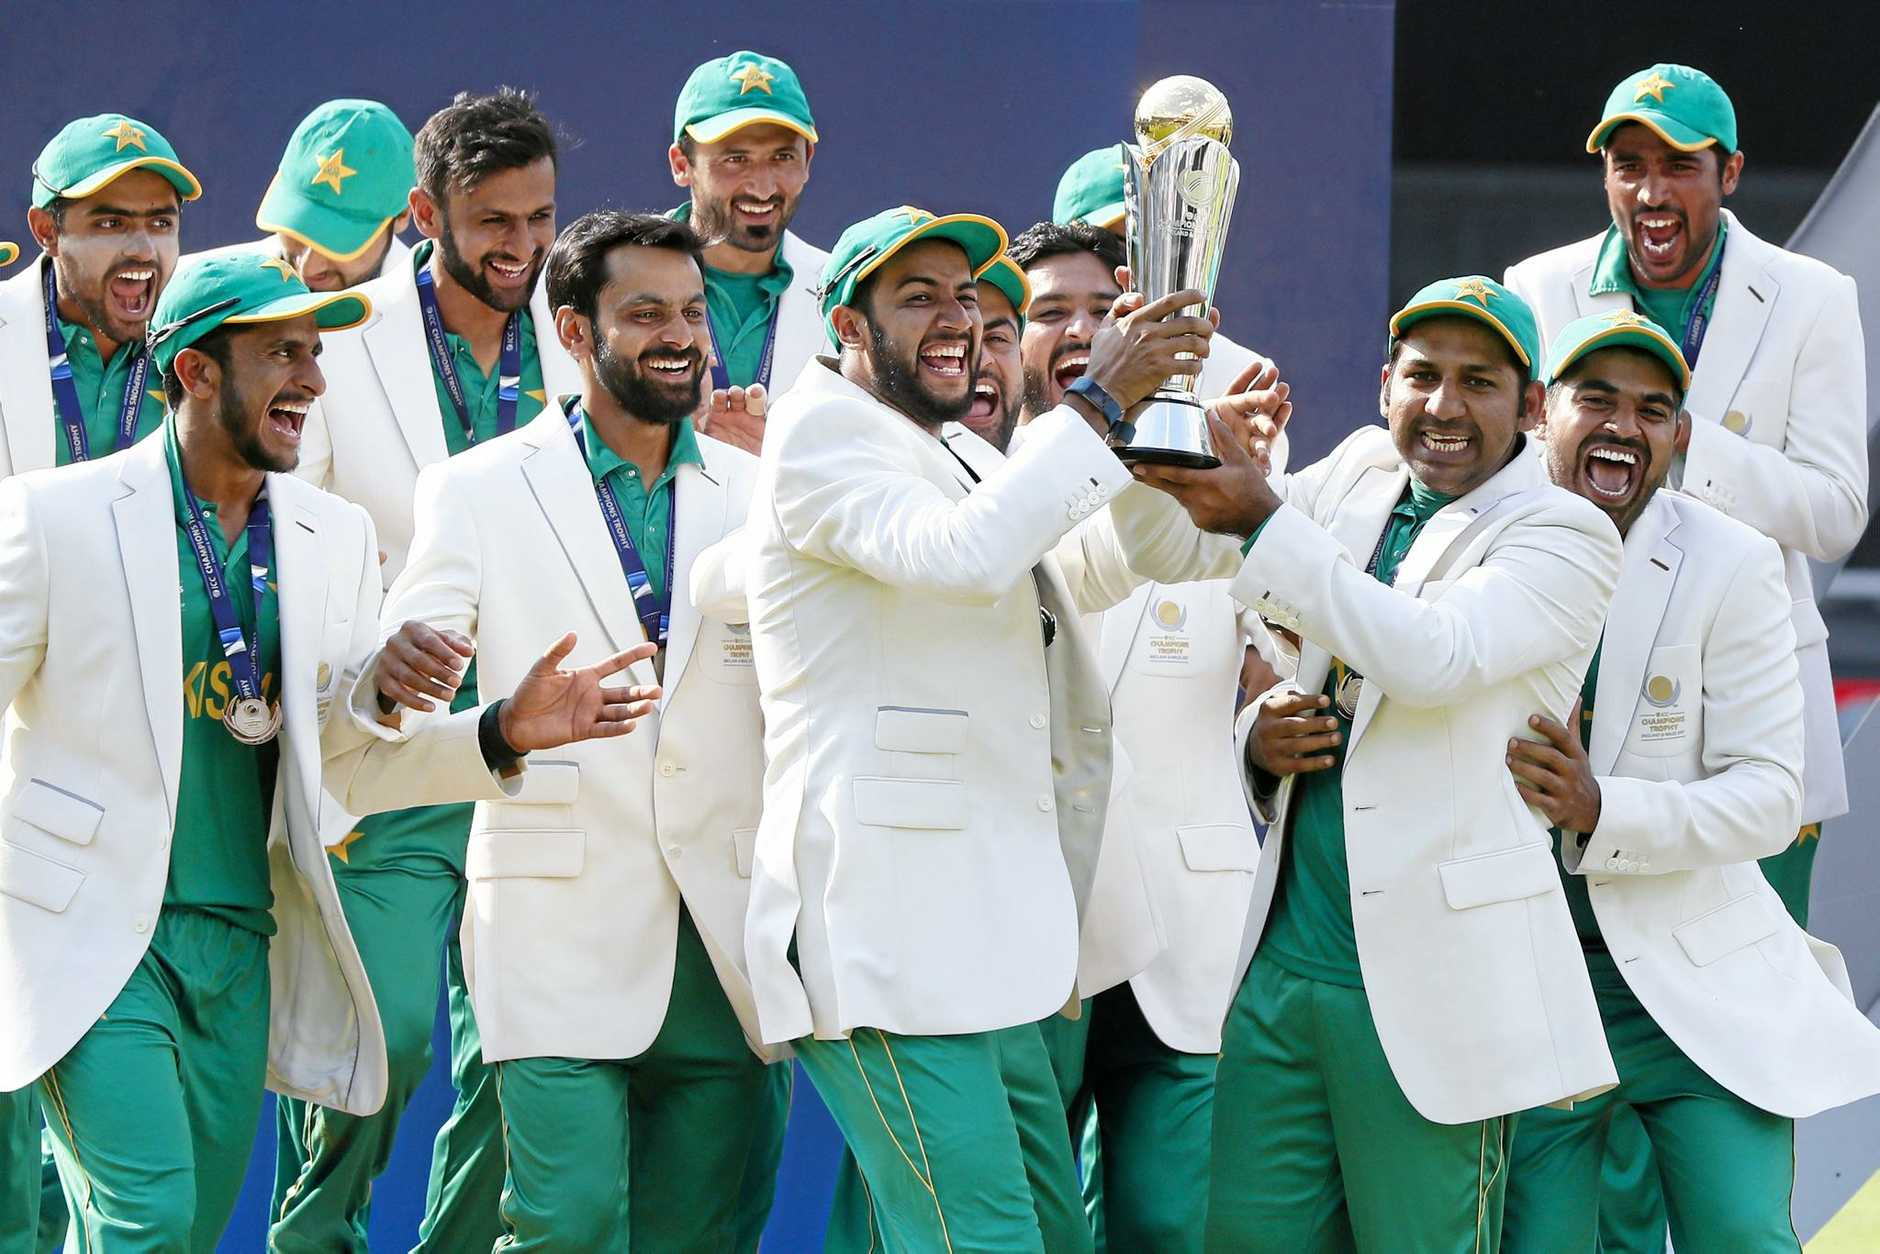 Pakistan players celebrate winning the ICC Champions Trophy after crushing India by 180 runs in the final.